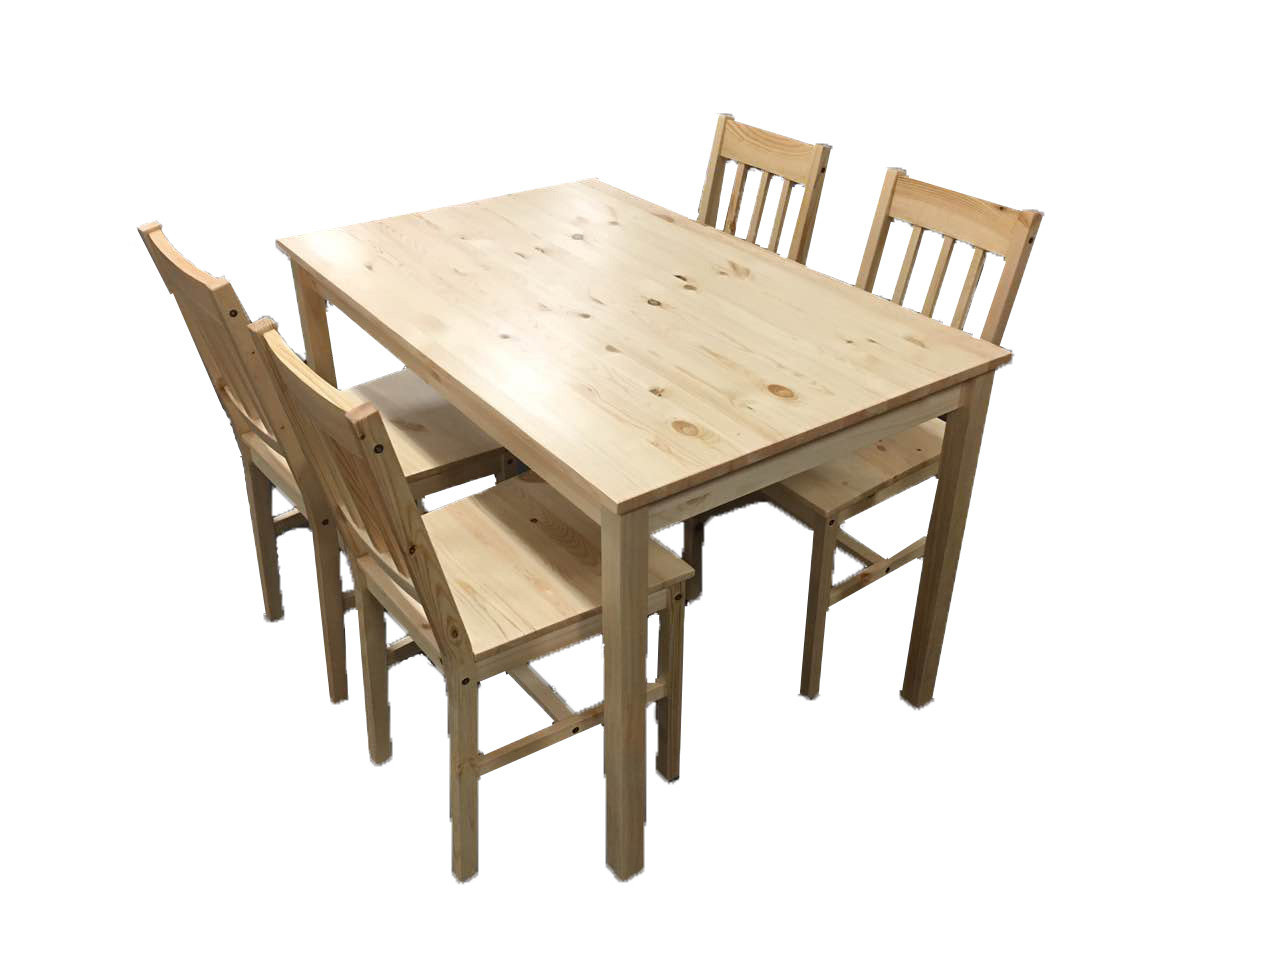 Solid Pine Wood Dining Tables Chairs